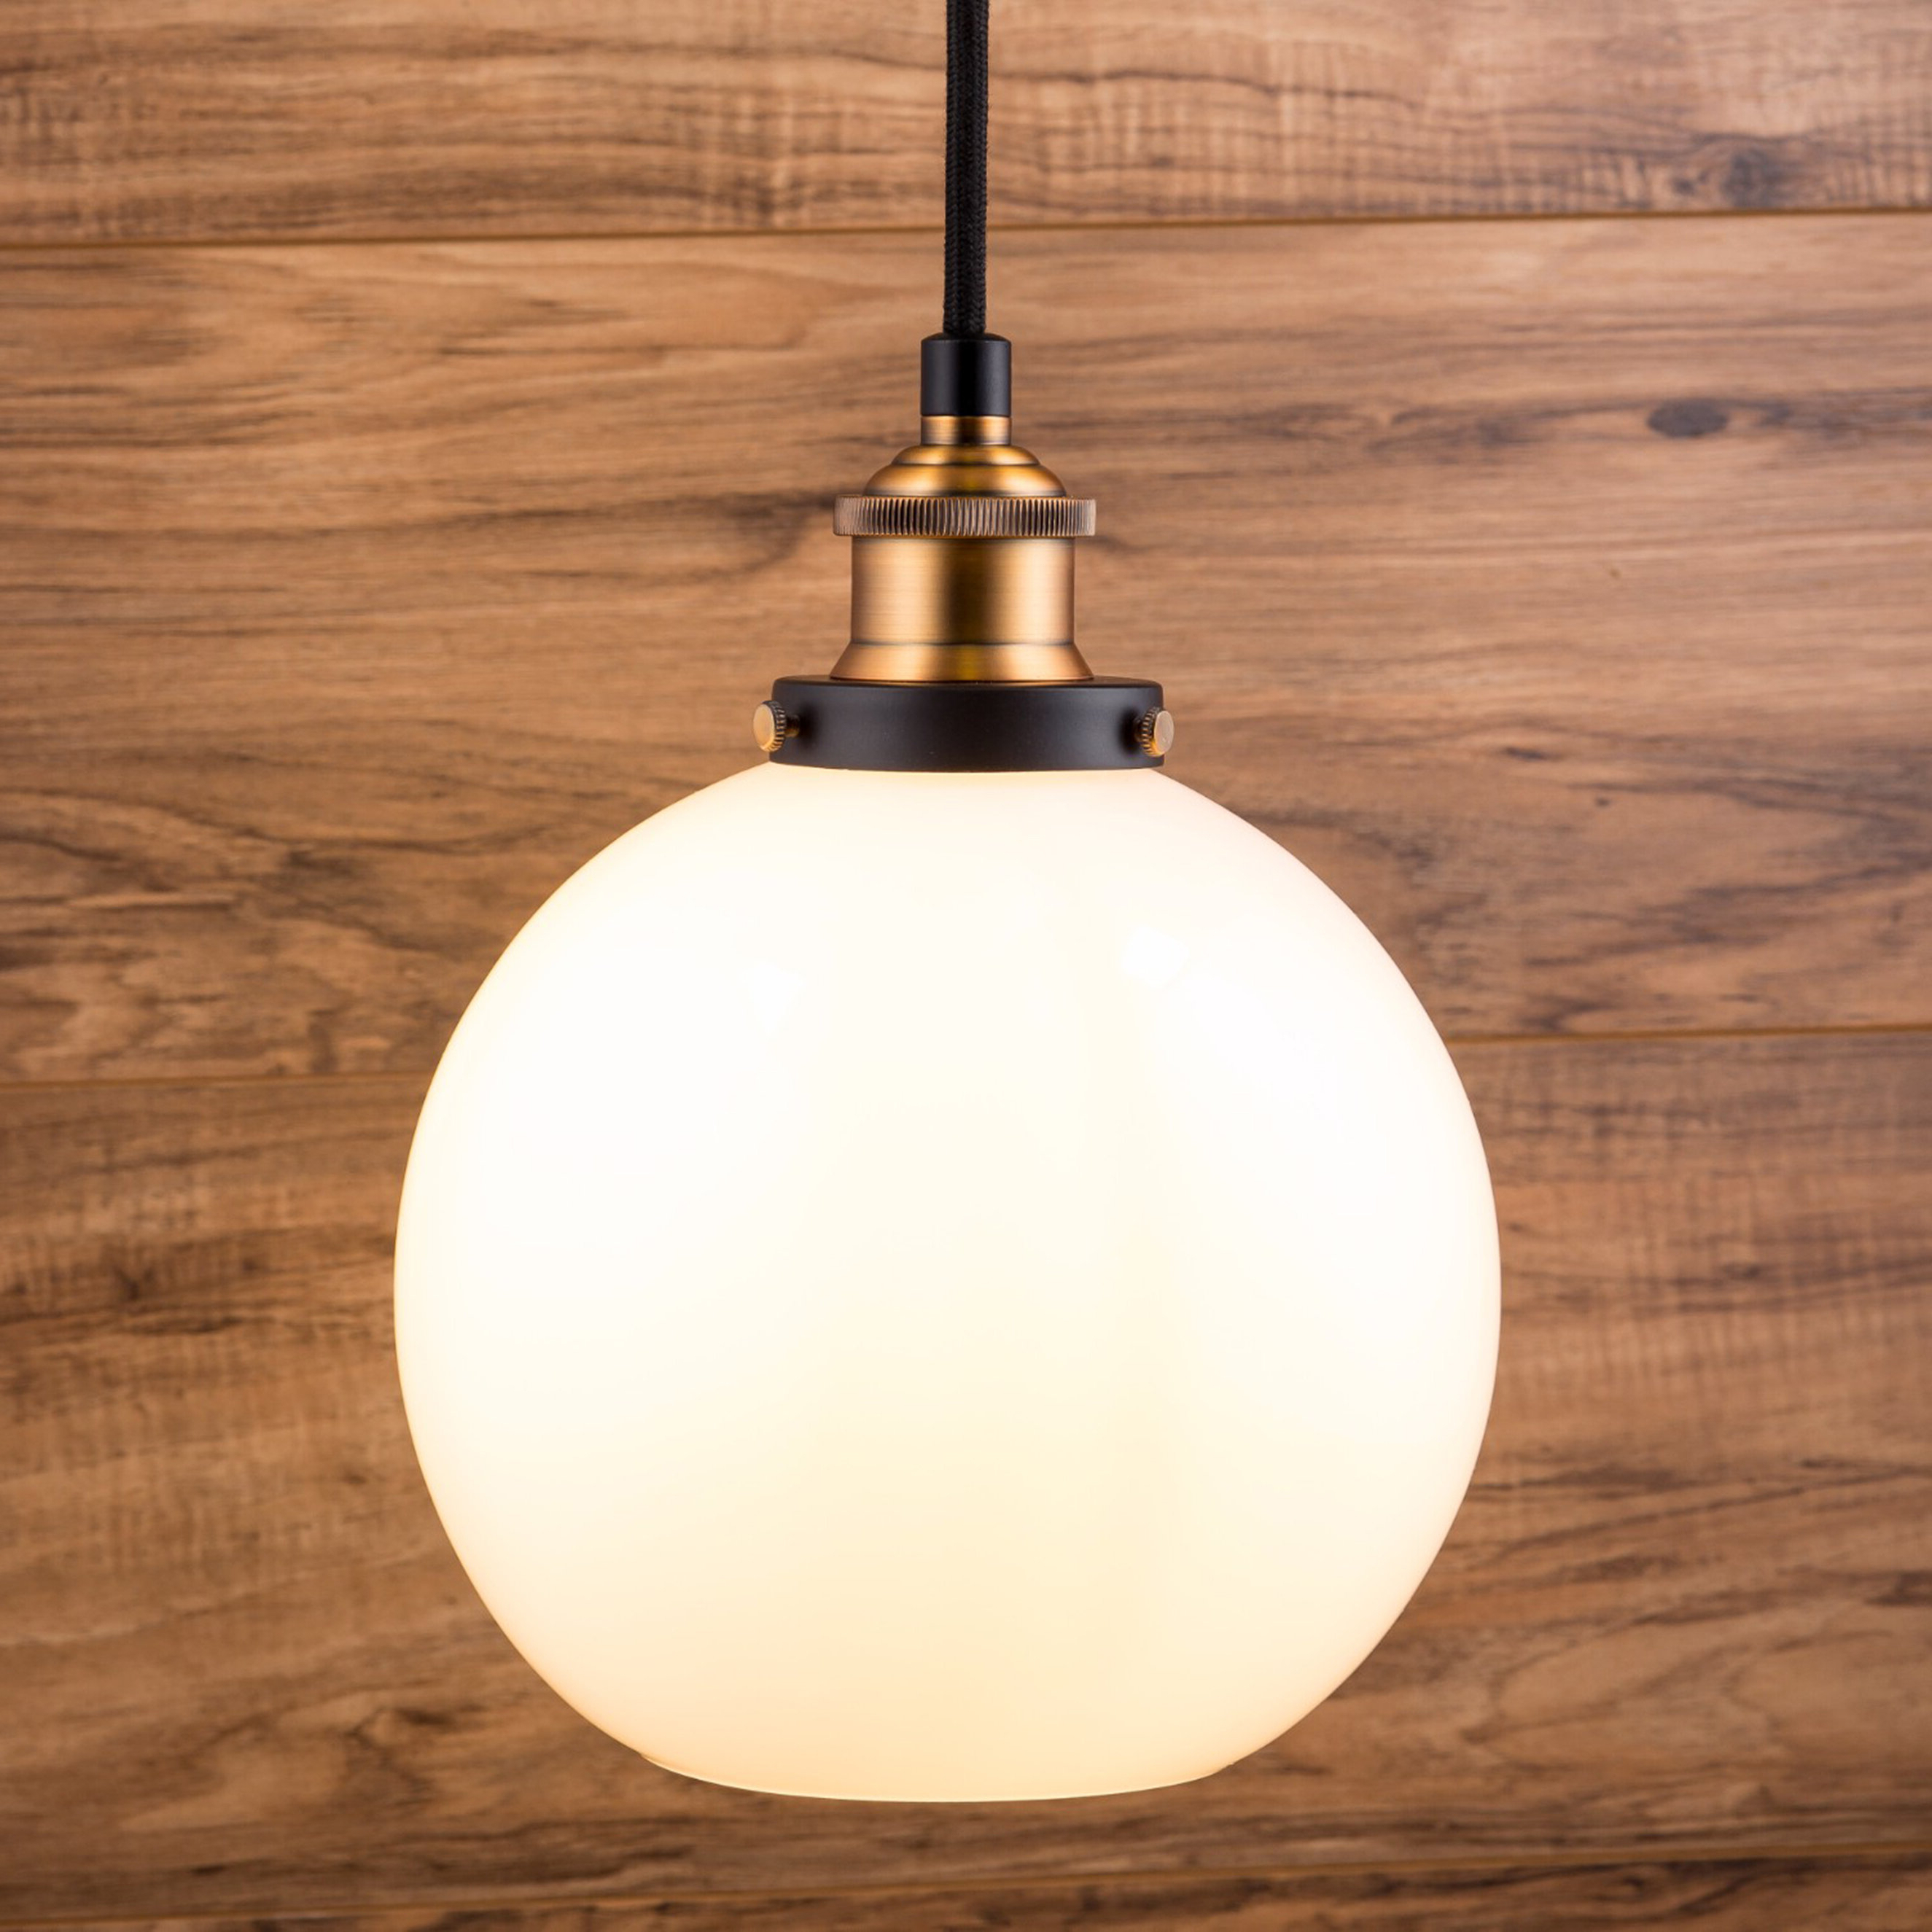 Betsy 1-Light Single Globe Pendants for Most Up-to-Date Dunneback 1-Light Single Globe Pendant